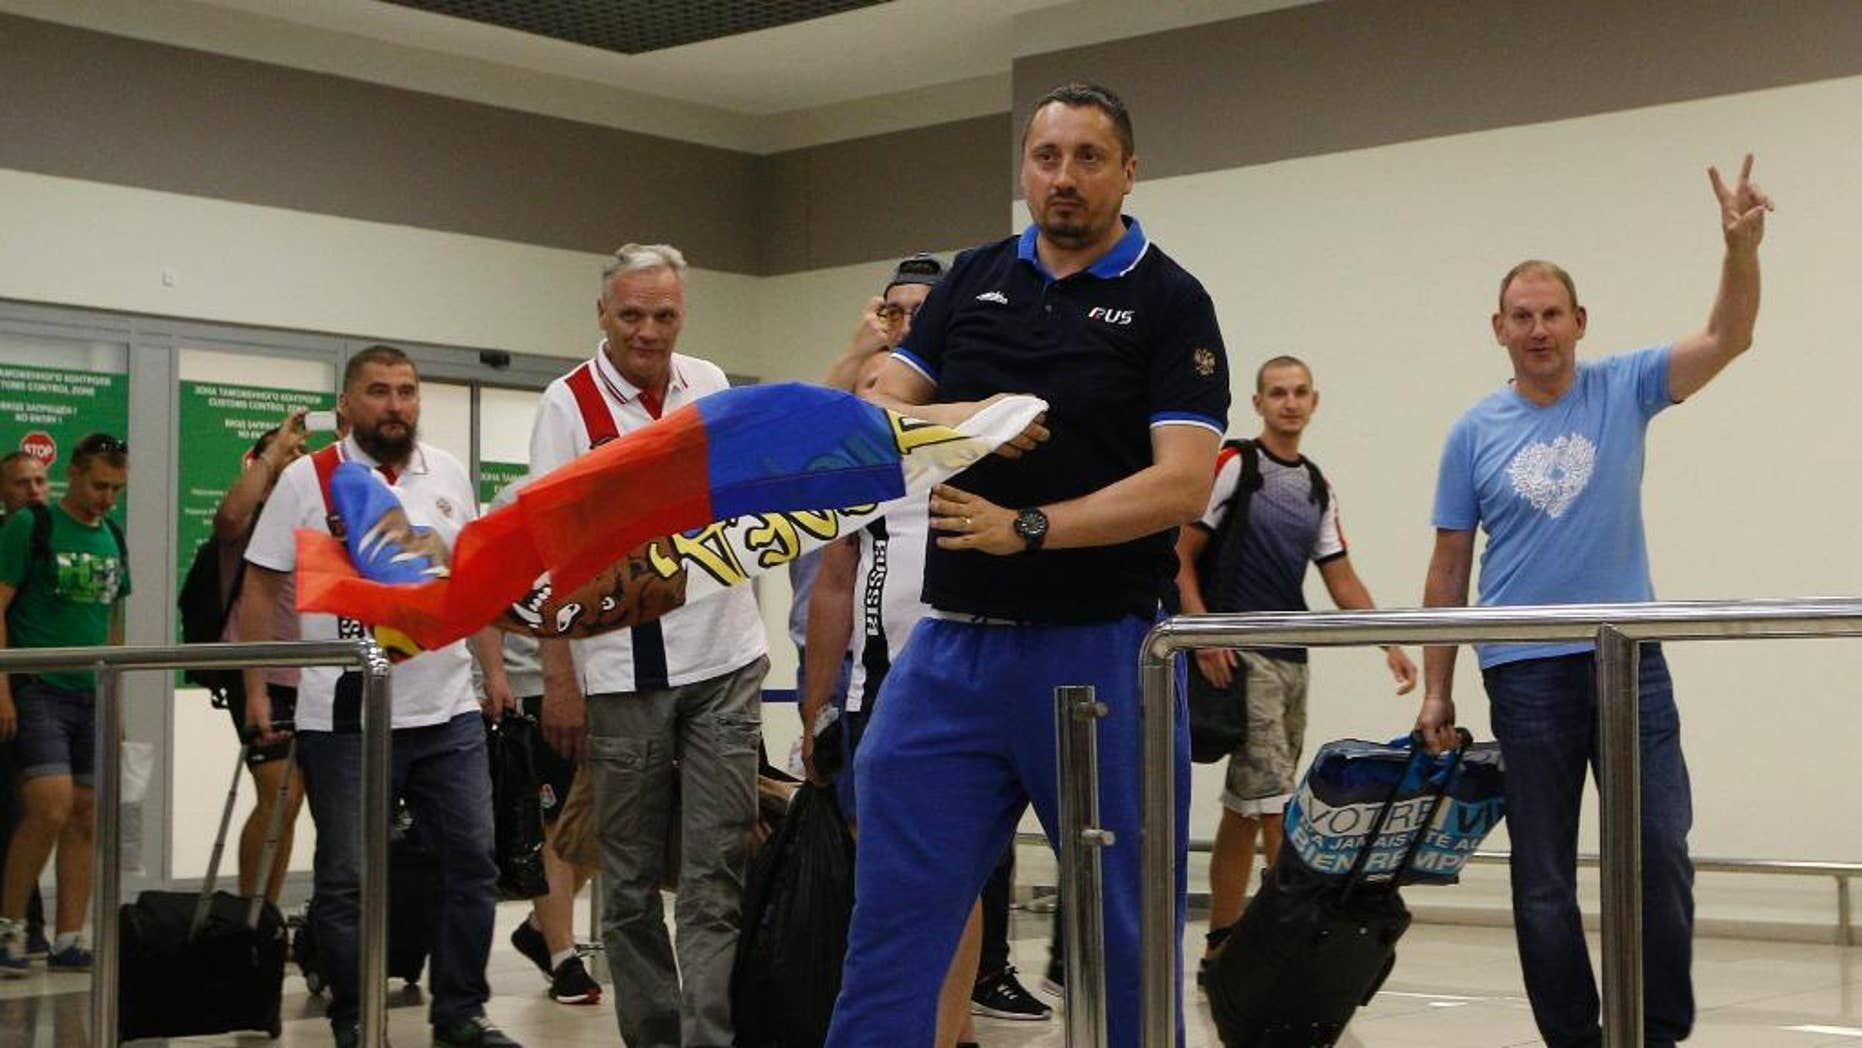 Alexander Shprygin, the leader of a Russian fan group, carries a Russian flag as he with a group of soccer fans deported from France arrived in Moscow, Russia, Saturday, June 18, 2016. A group of 20 Russian soccer fans were deported from France, after French authorities accused them of being involved in hooliganism. (AP Photo/Alexander Zemlianichenko)